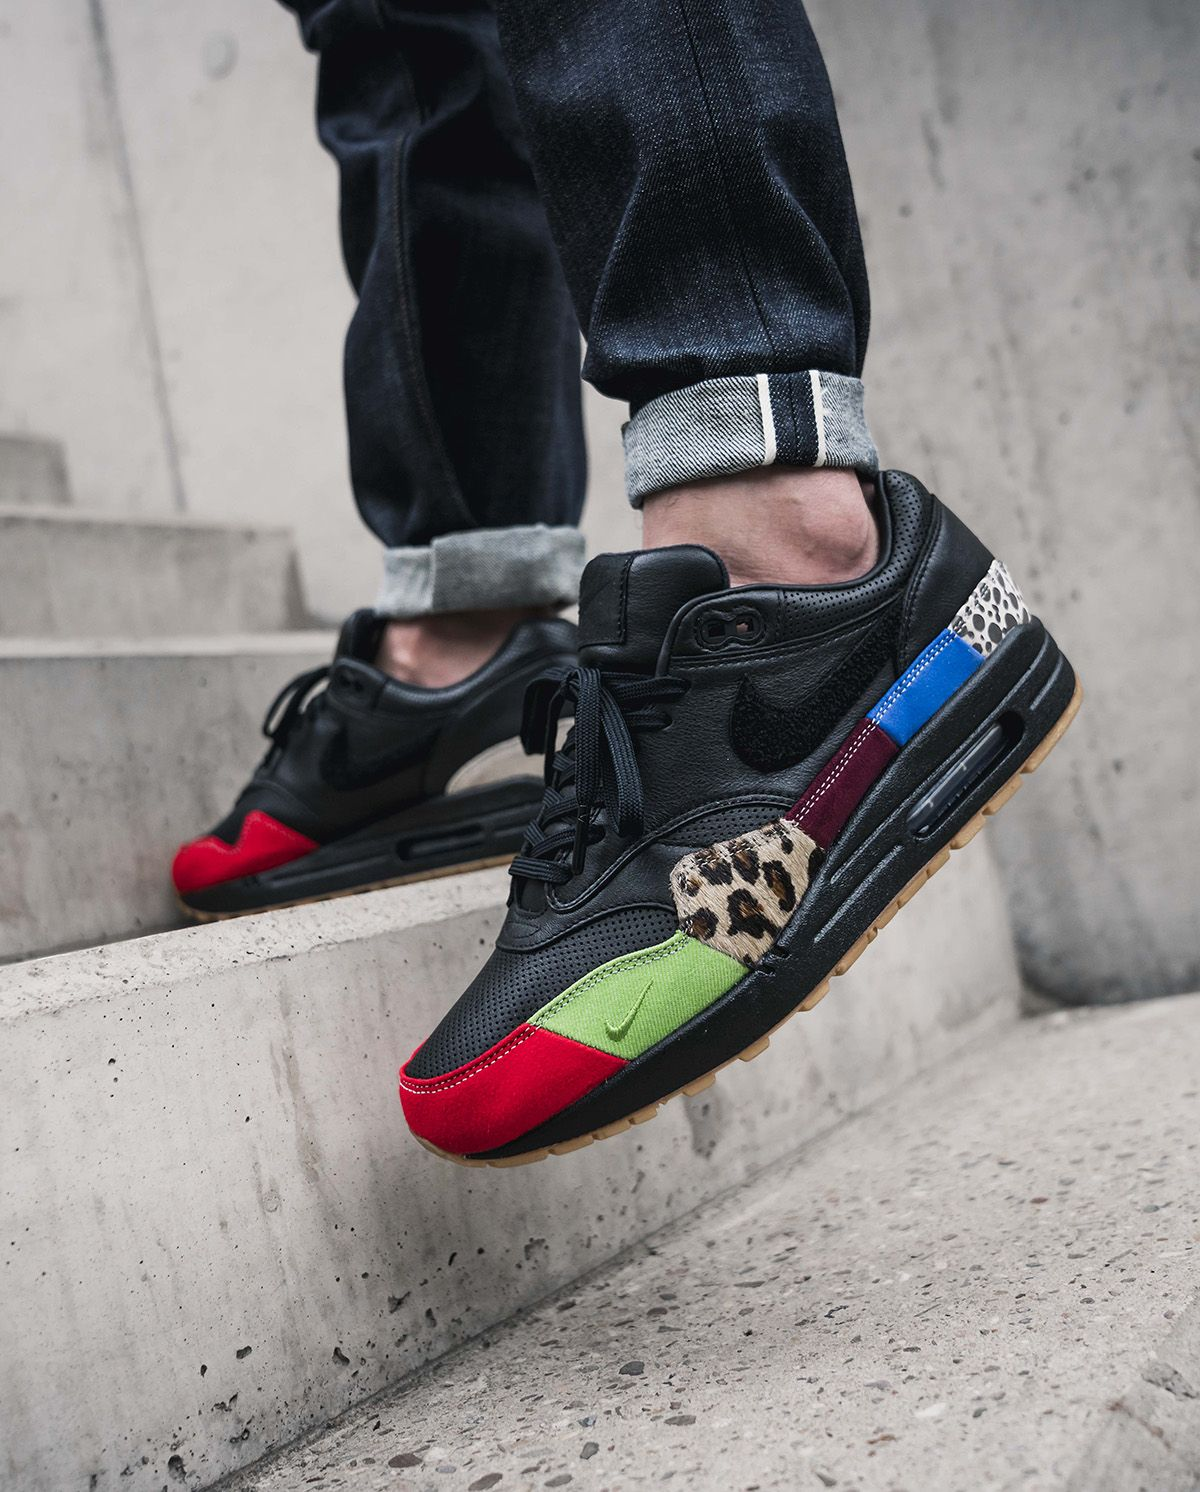 designer fashion 9b9cd f6ef3 Nike Air Max 1 Master  On-Foot, 27 Detailed Pics   Video - EU Kicks   Sneaker Magazine